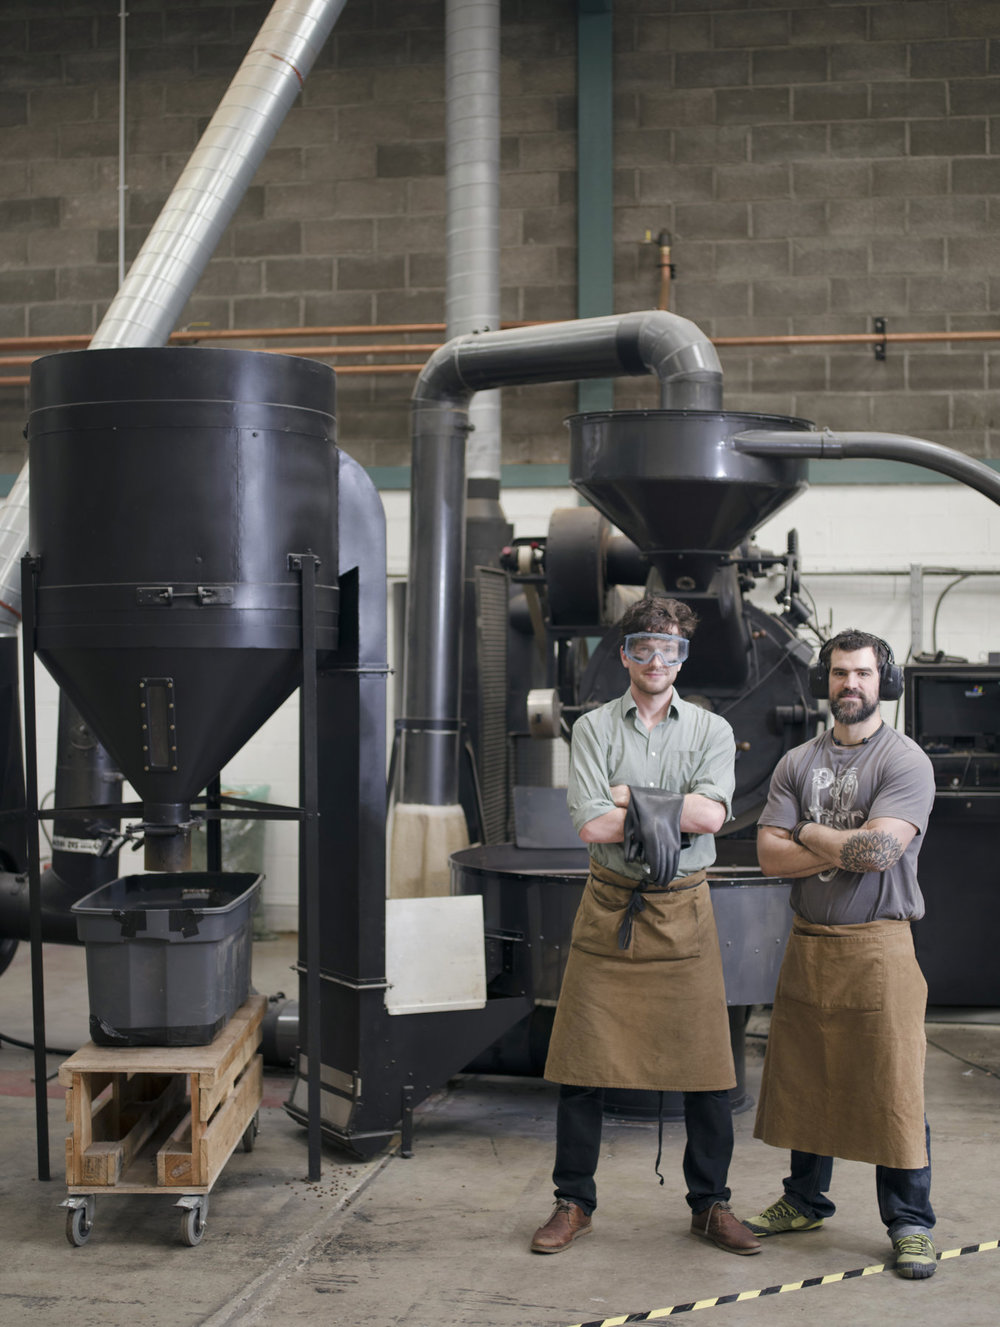 Mikey (left) from Wiper & True with Extract Coffee's head roaster David Faulkner (Right)